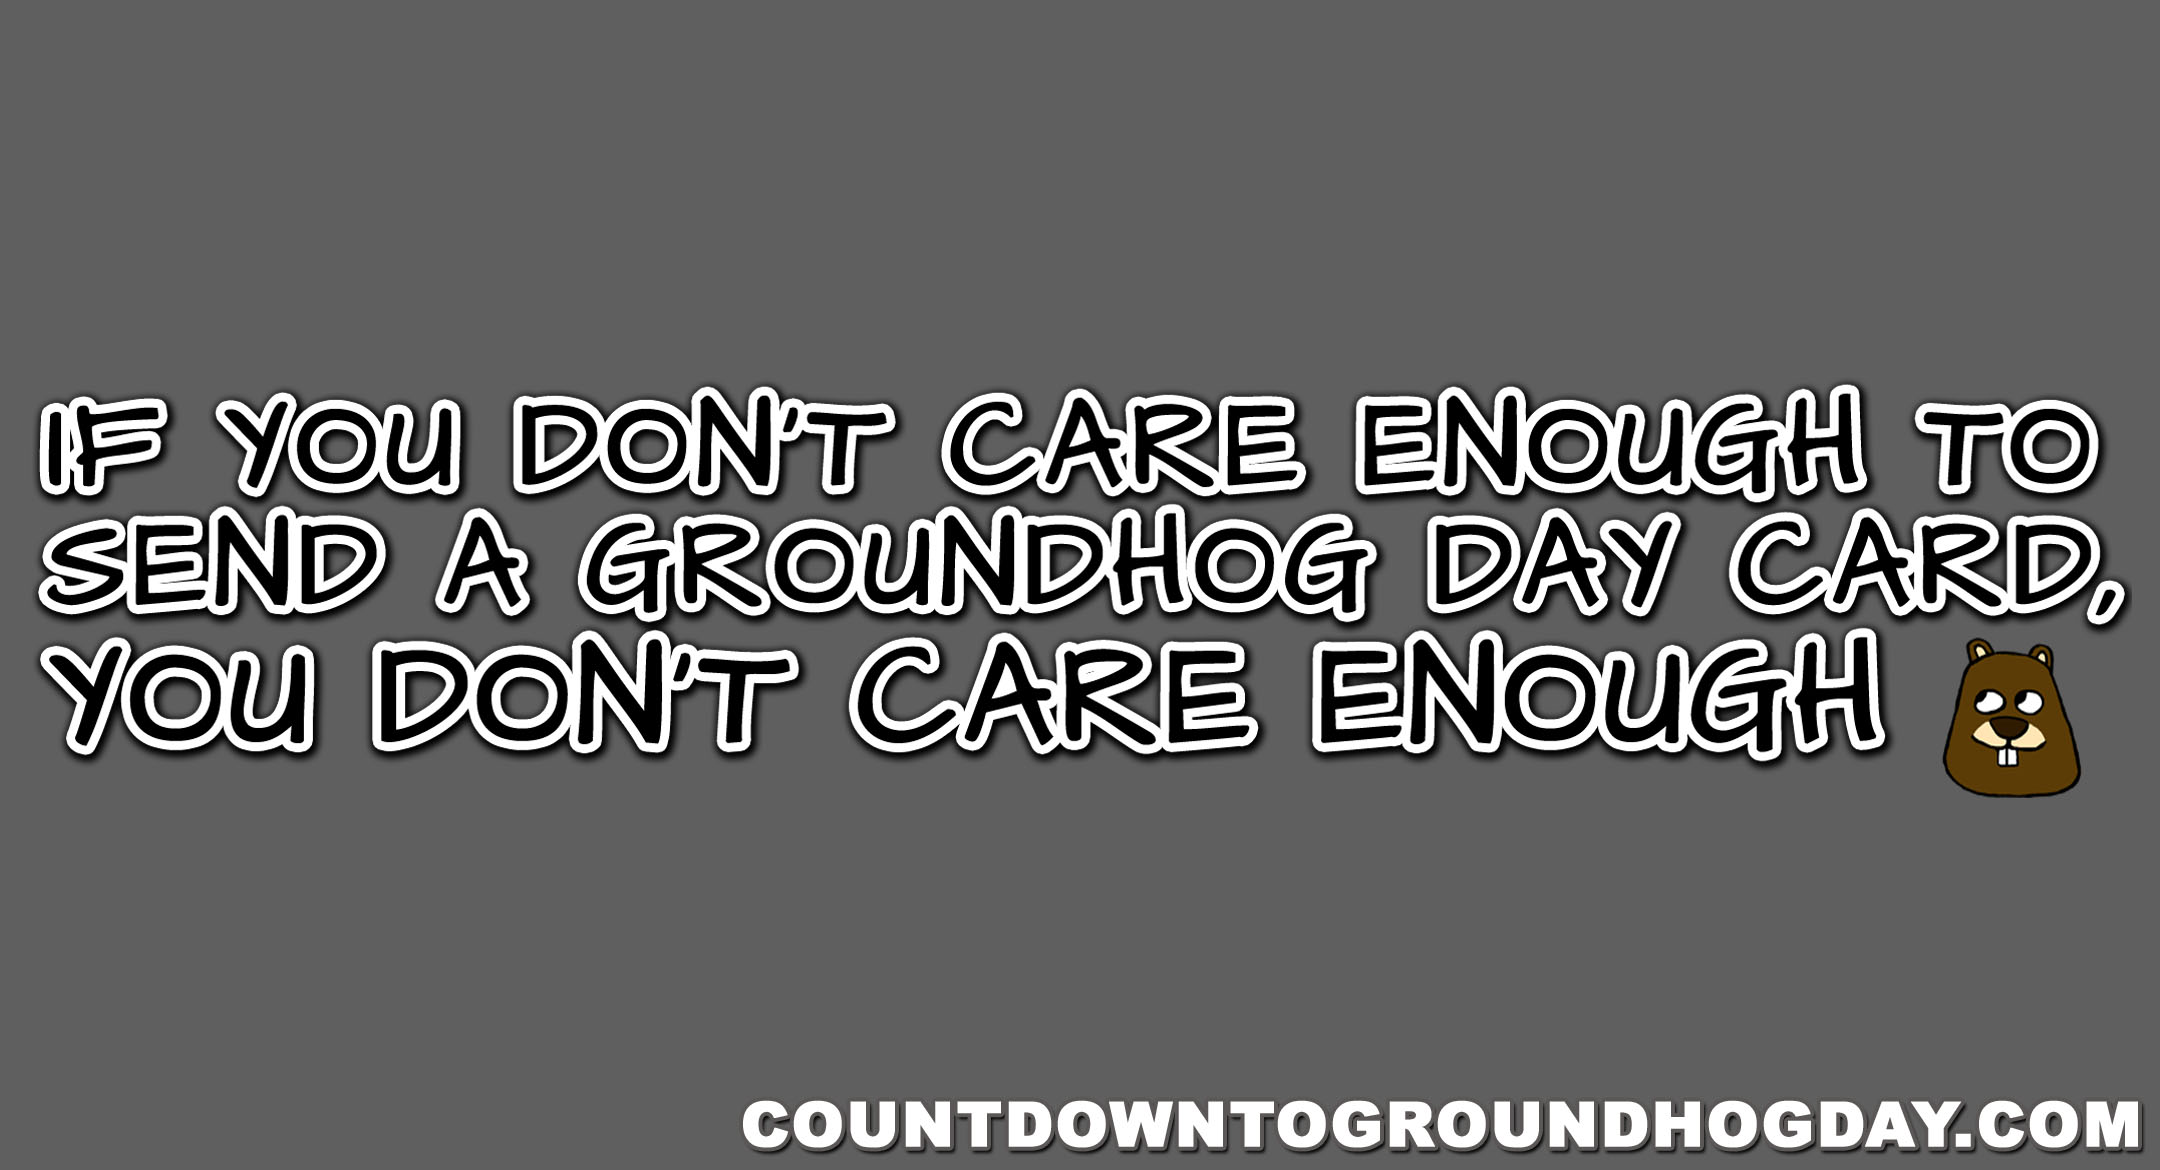 If you don't care enough to send a Groundhog Day ecard